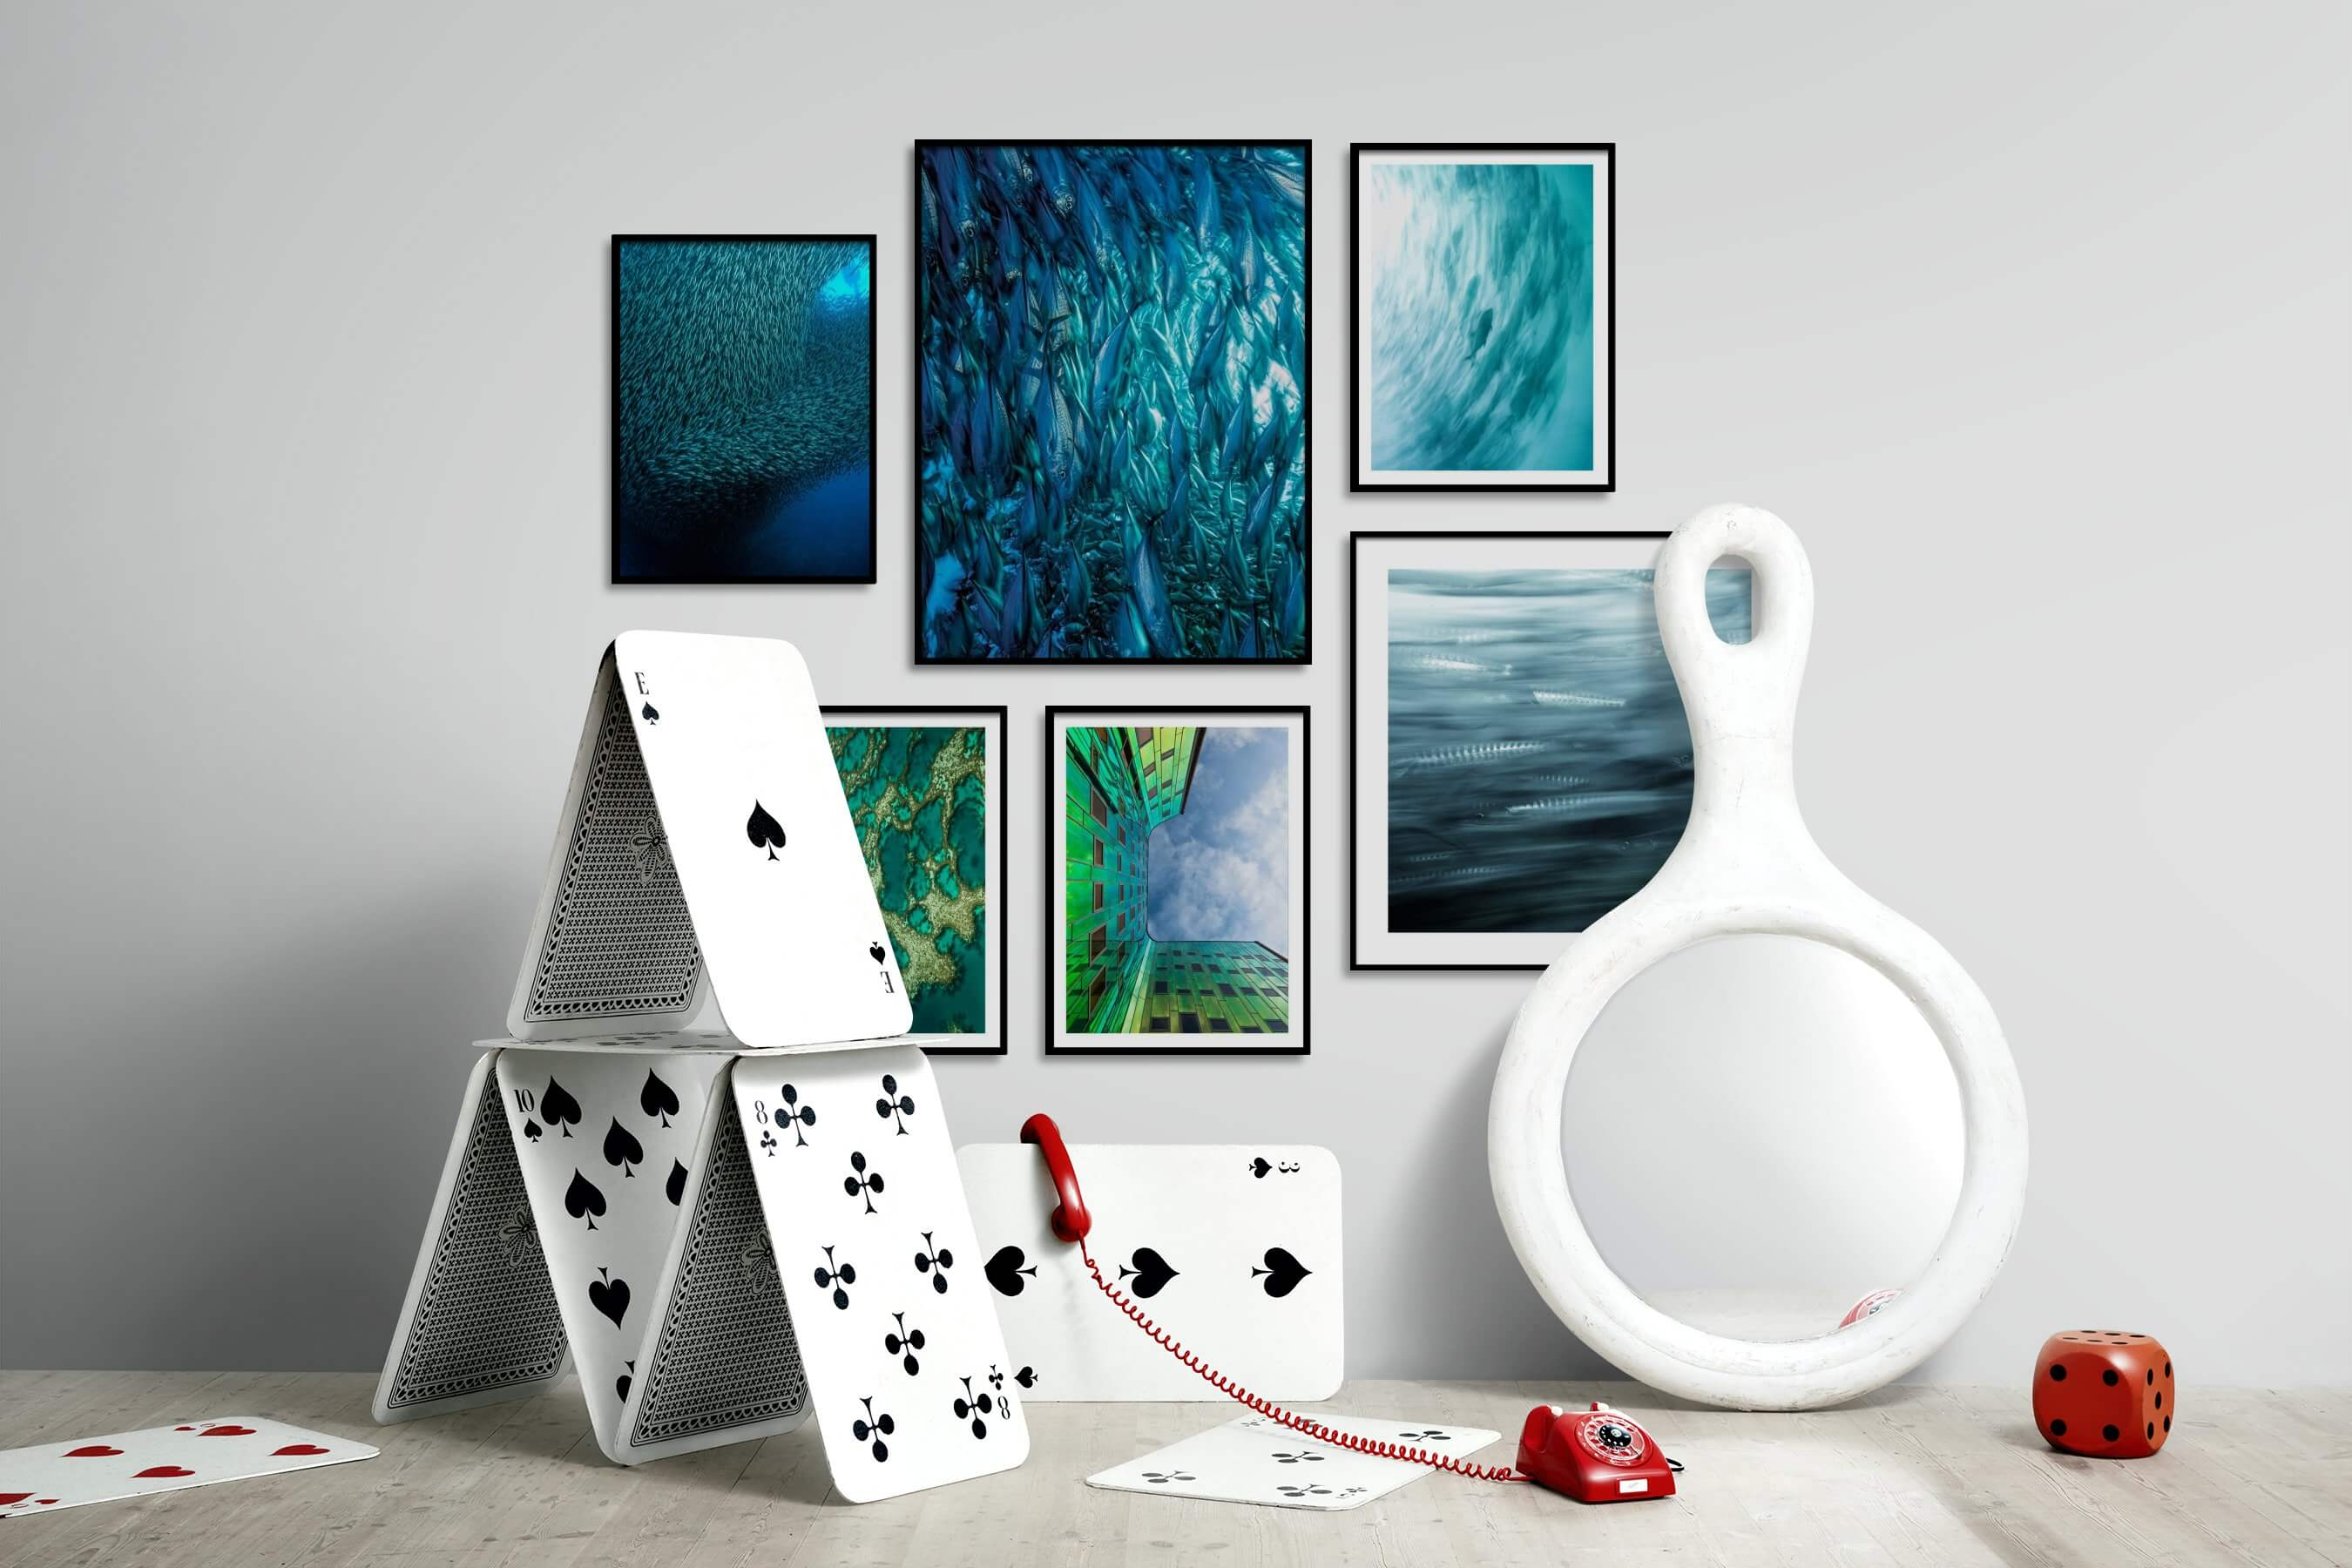 Gallery wall idea with six framed pictures arranged on a wall depicting Animals, Beach & Water, For the Maximalist, For the Moderate, and Nature